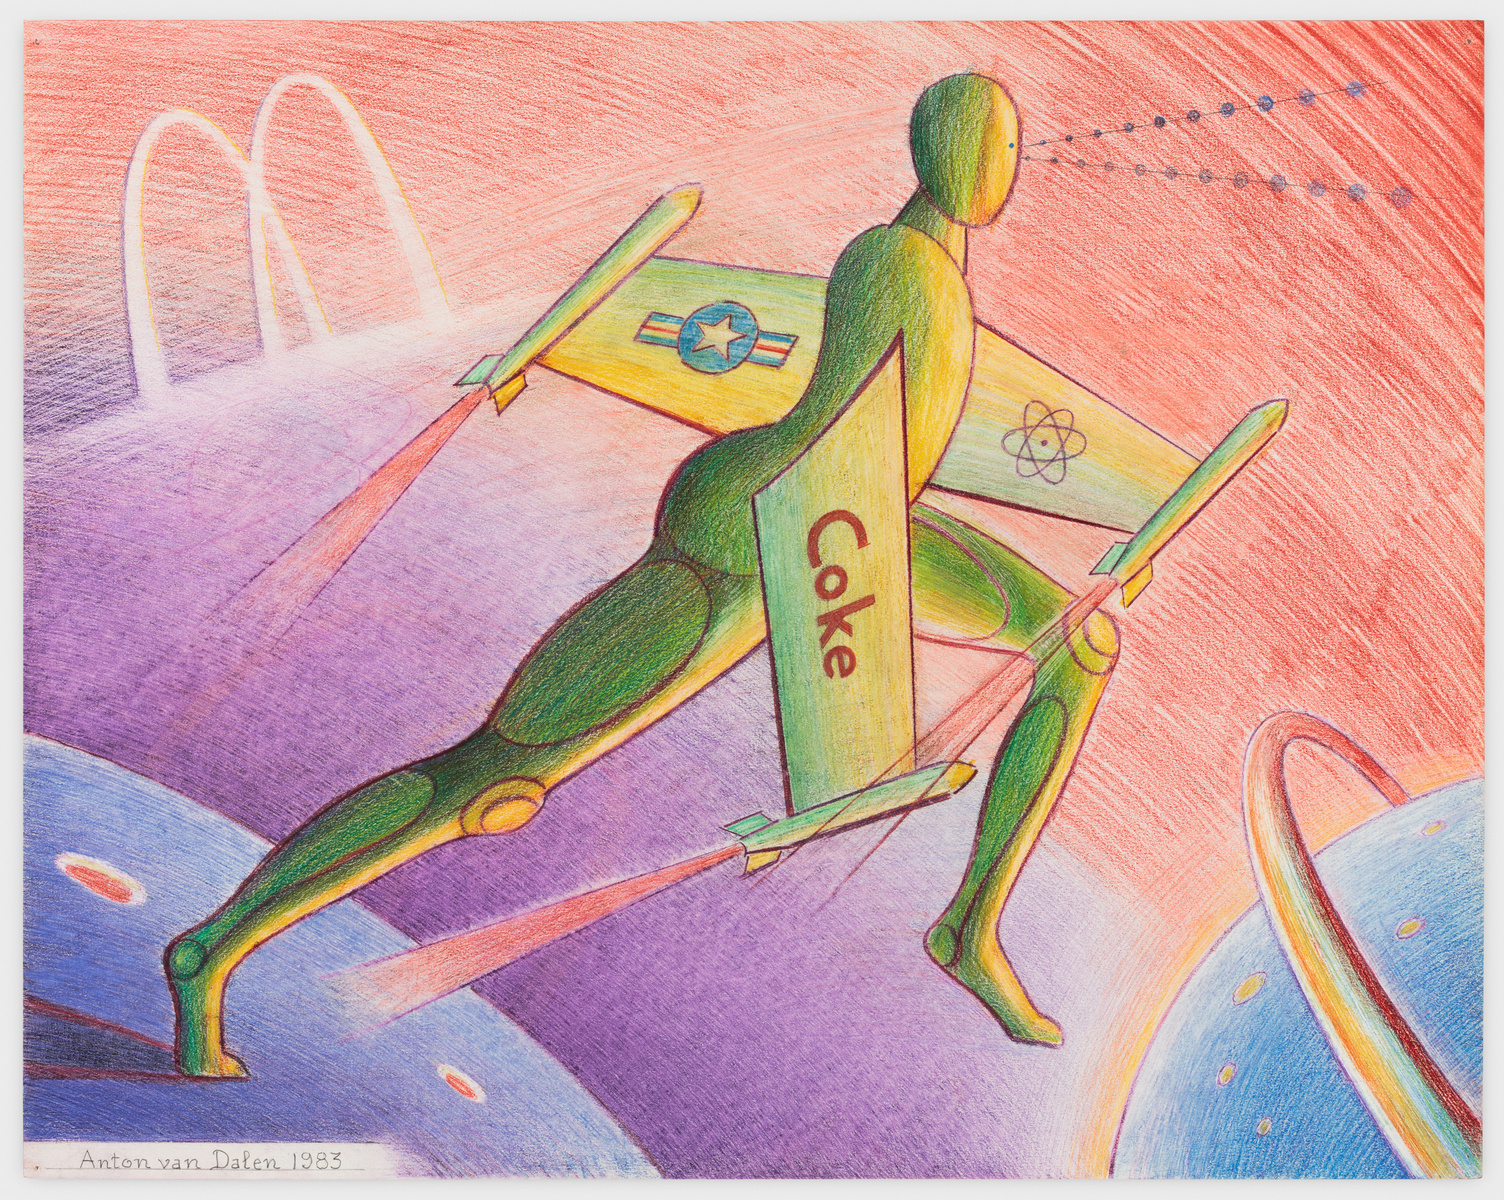 Science Fiction #3, 1983 Colored pencil on paper 23 x 29 inches